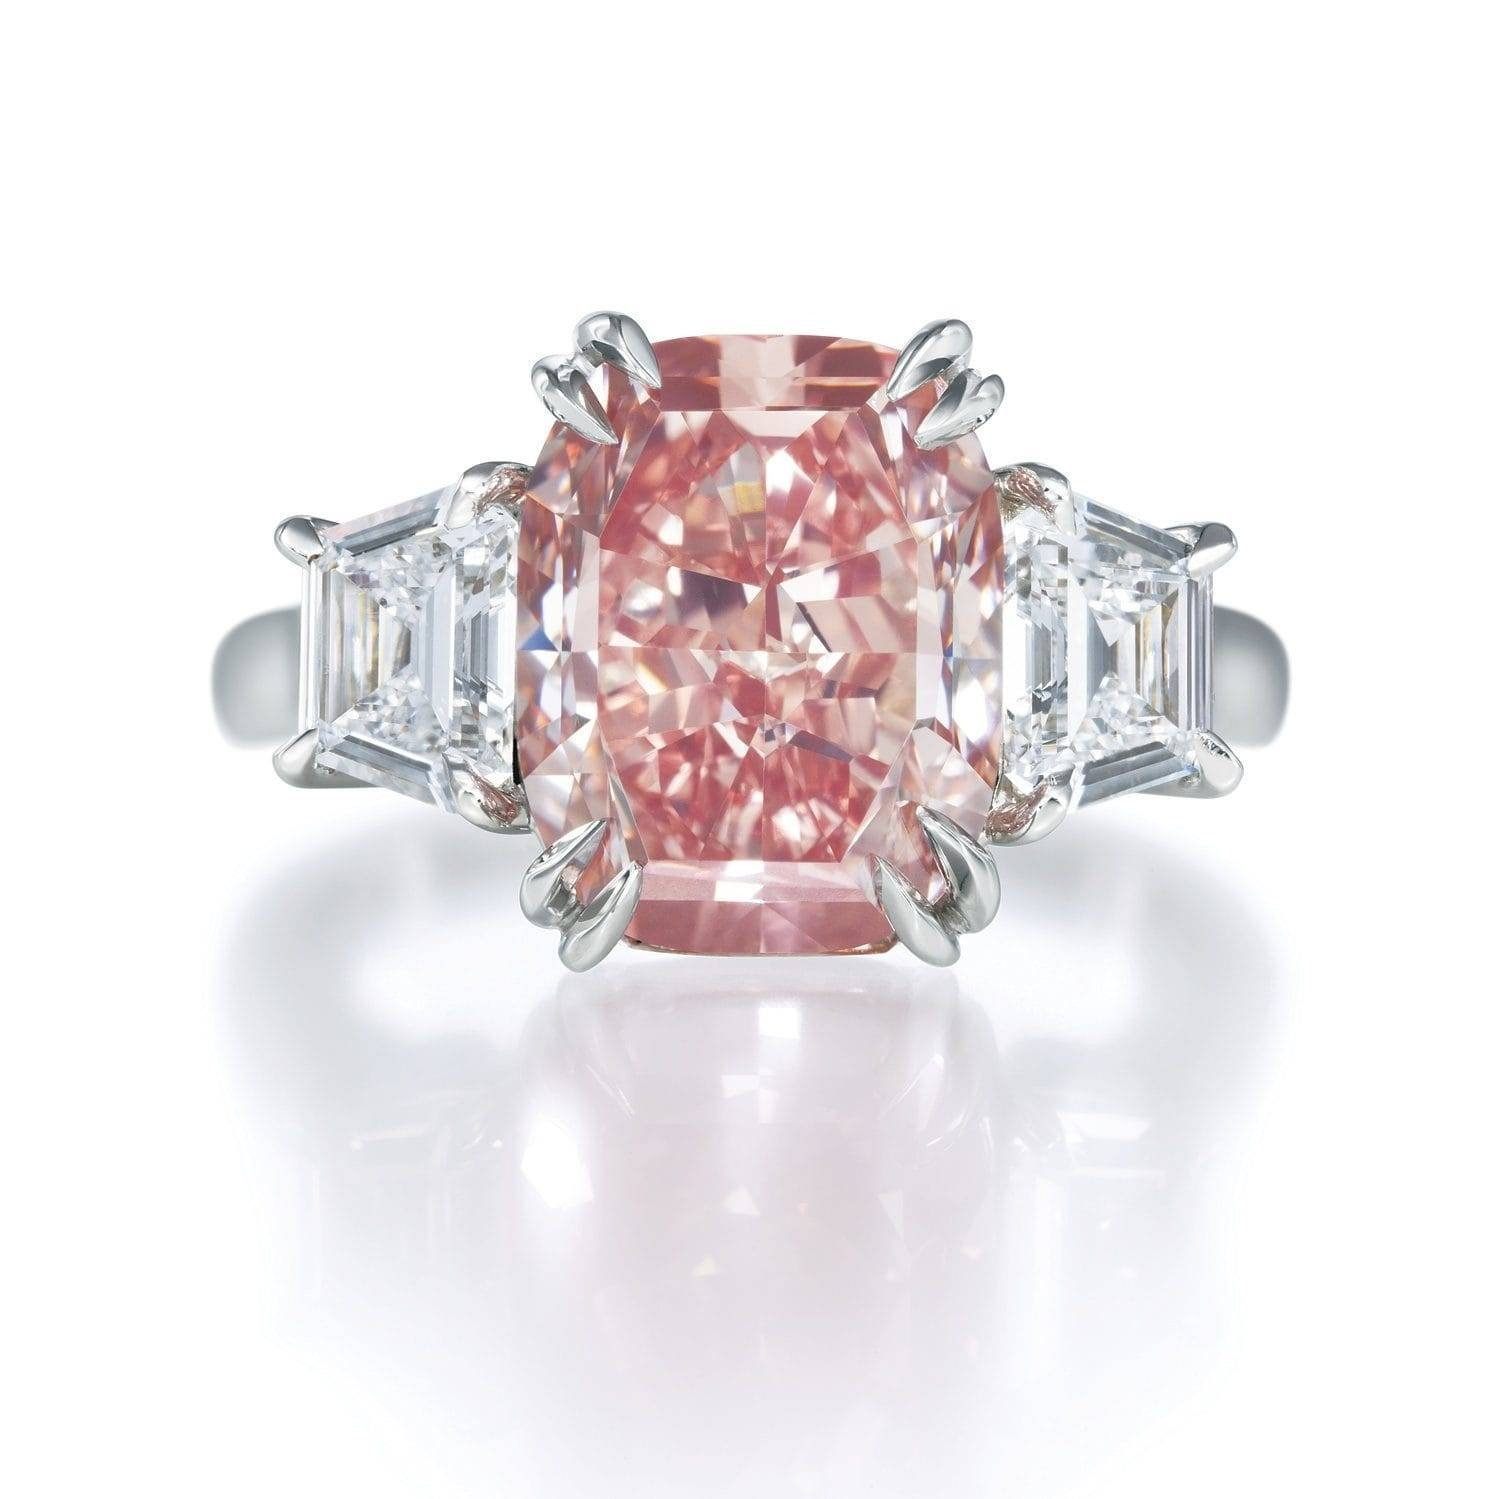 rings jewelers gabriel ring co cropped engagement pink blush halo murphy products with